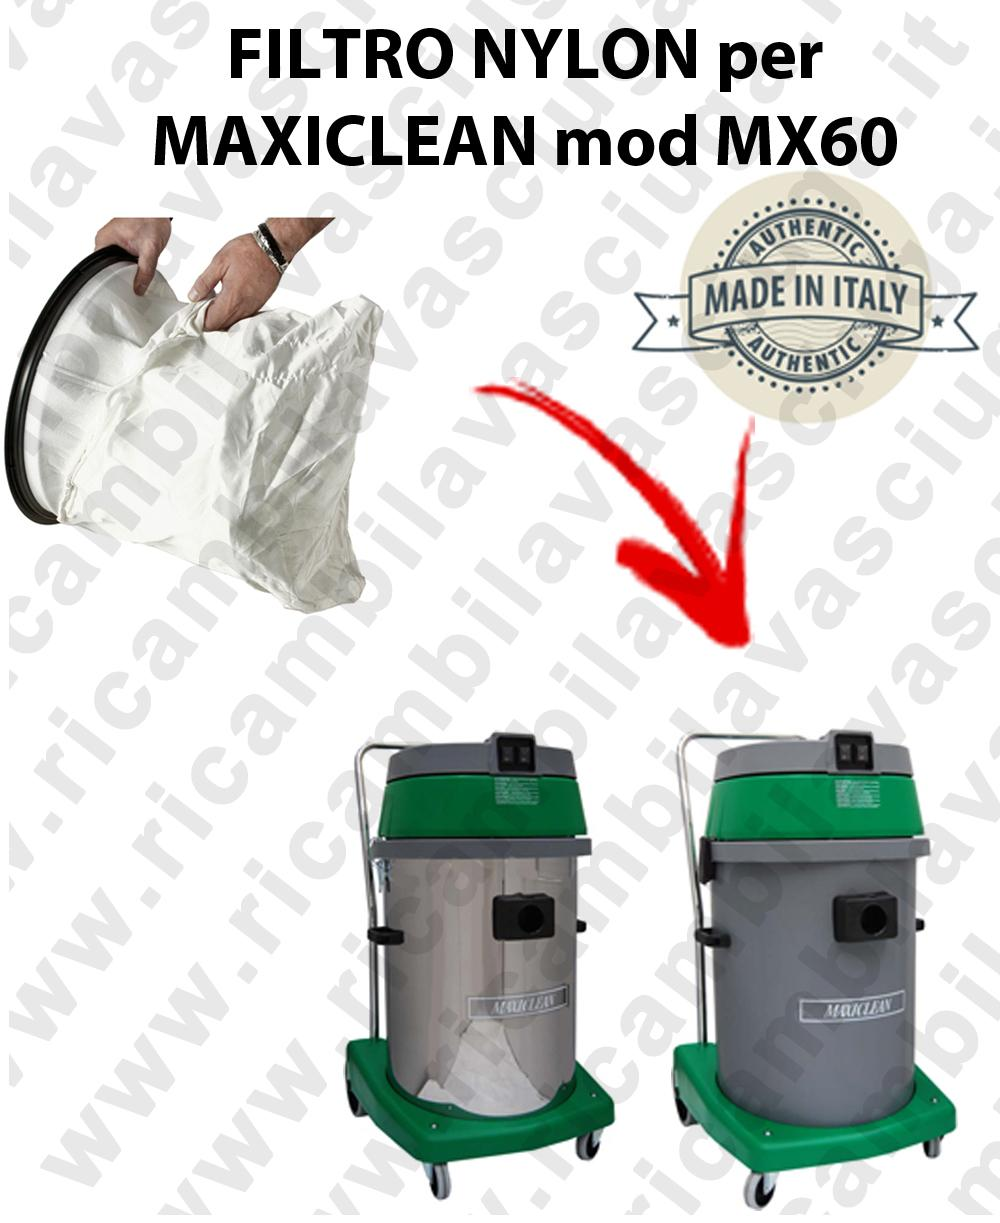 NYLON filter bag cod: 3001220 for vacuum cleaner MAXICLEAN model MX60 BY SYNCLEAN